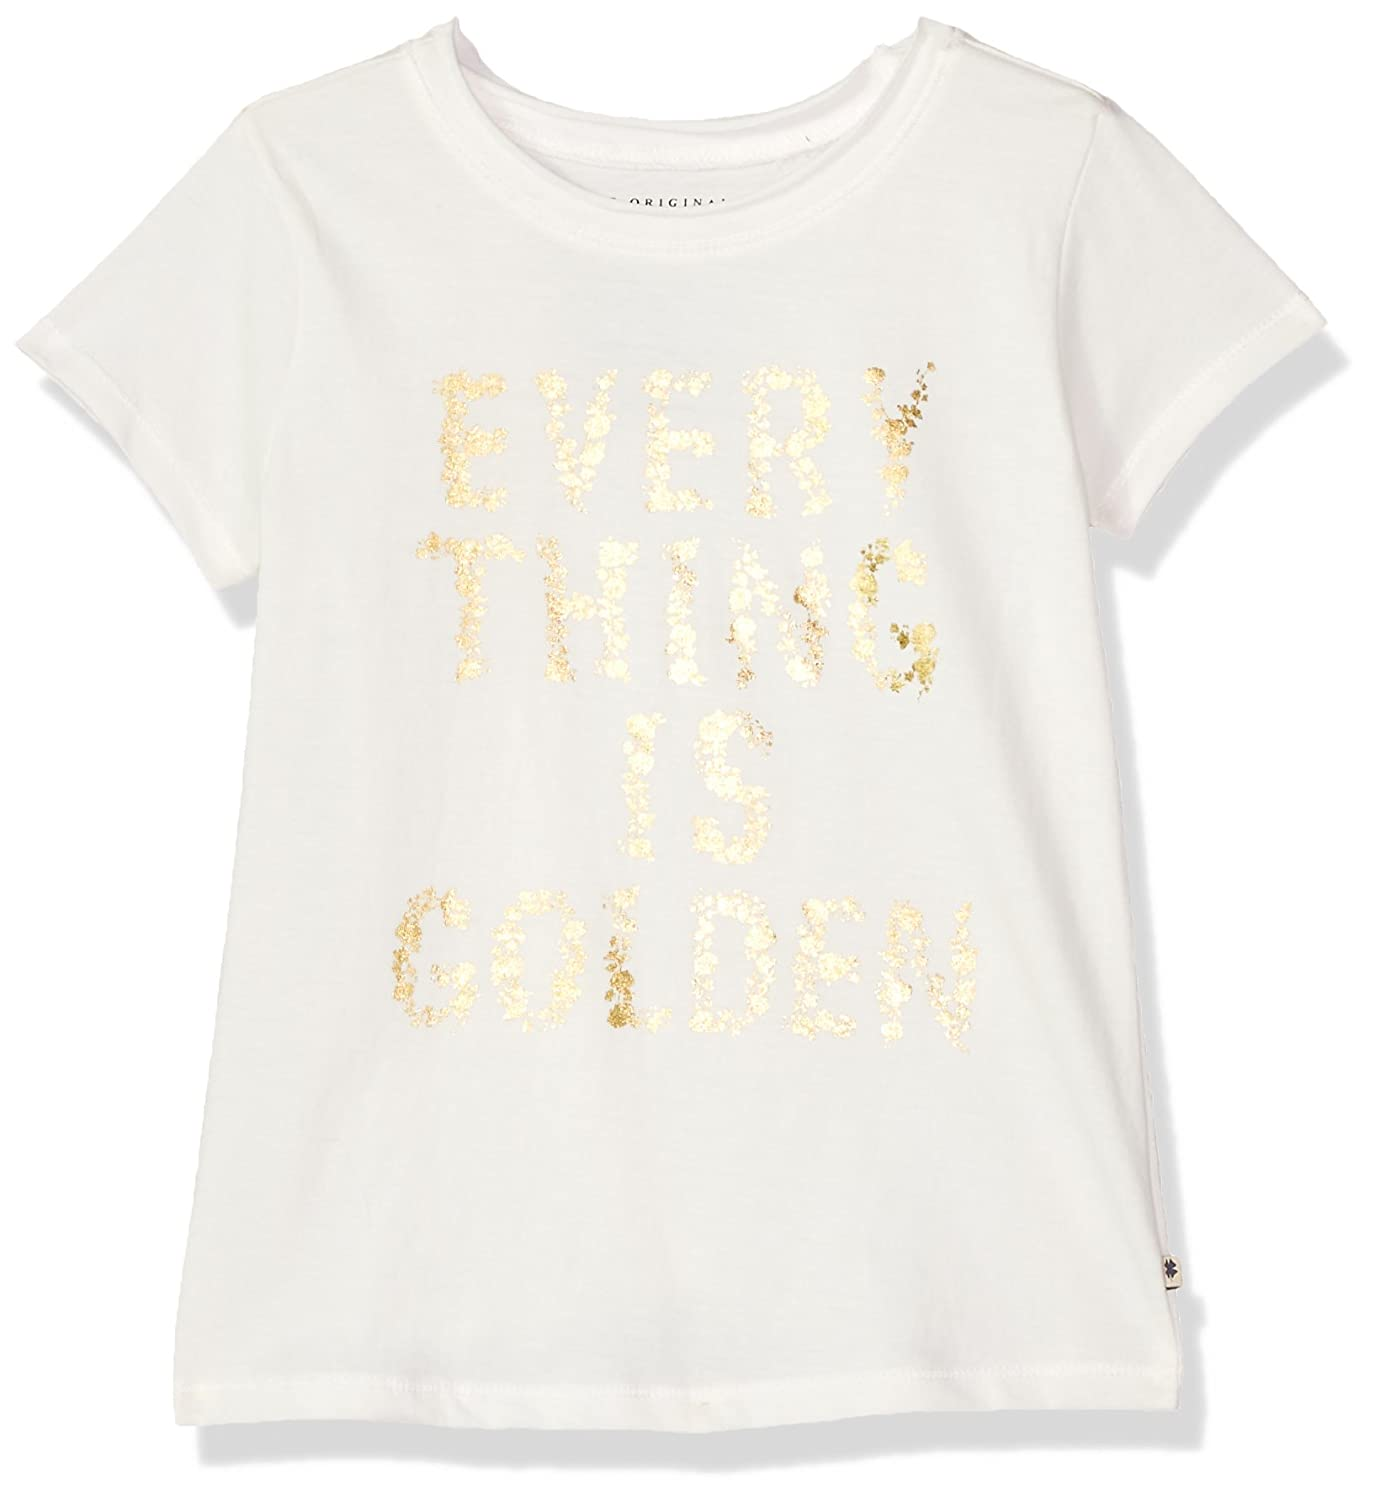 f066ac98d0b0 Amazon.com  Lucky Brand Girls  Olivia Graphic Tee  Clothing